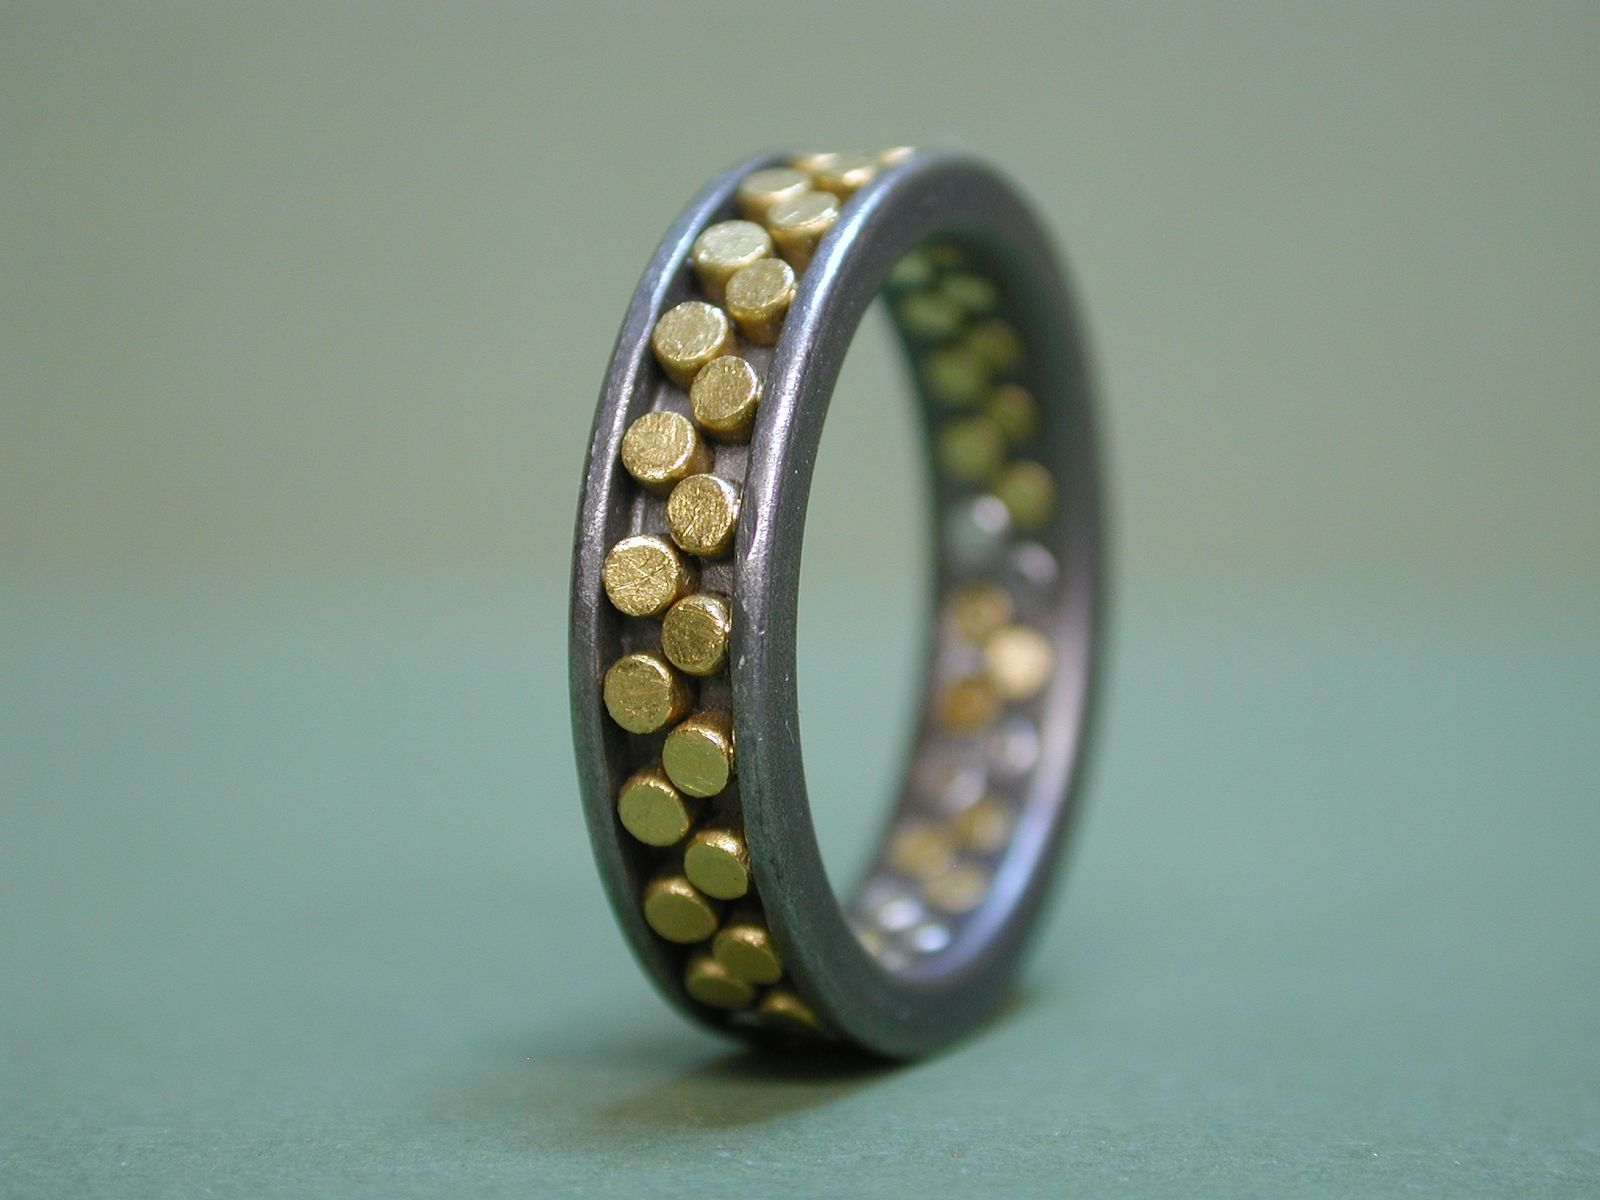 custom made titanium wedding ring with 24k gold rivets - Custom Made Wedding Rings